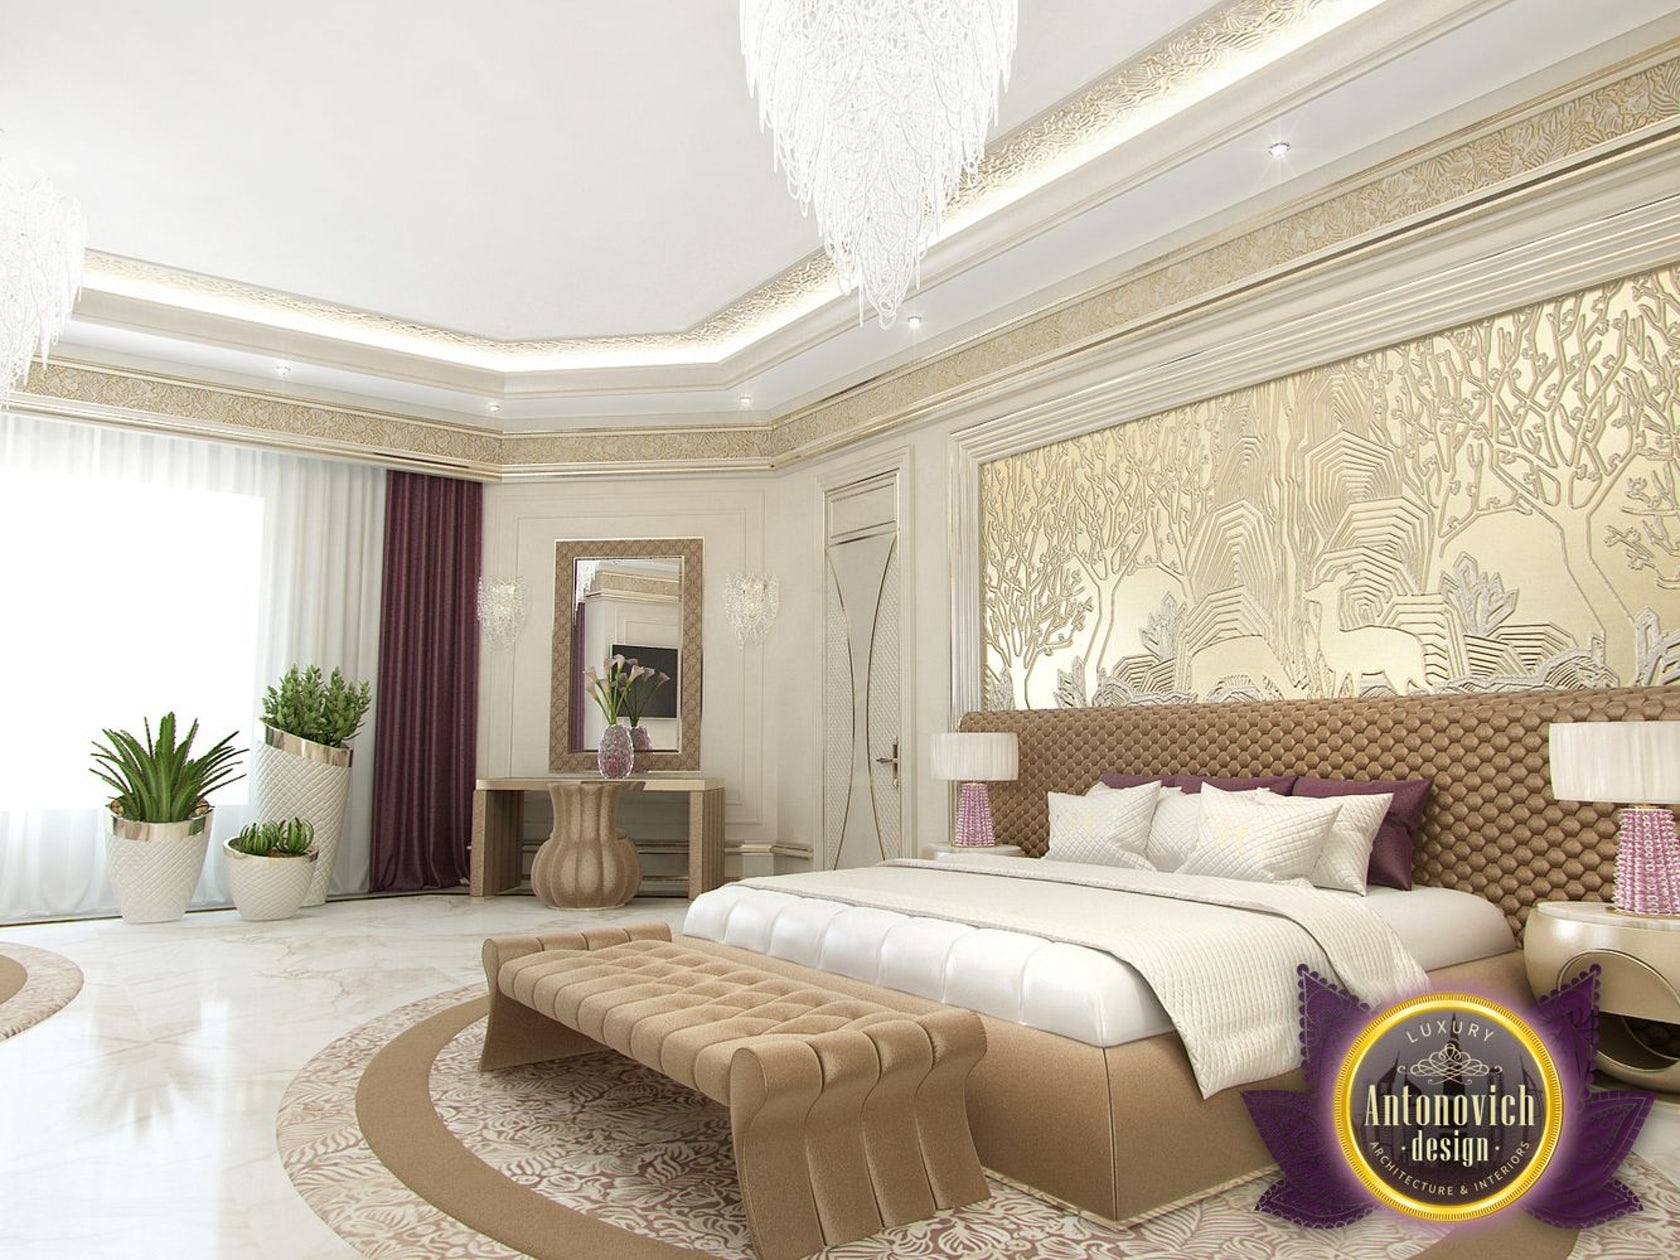 Modern bedroom designs by Luxury Antonovich Design ...